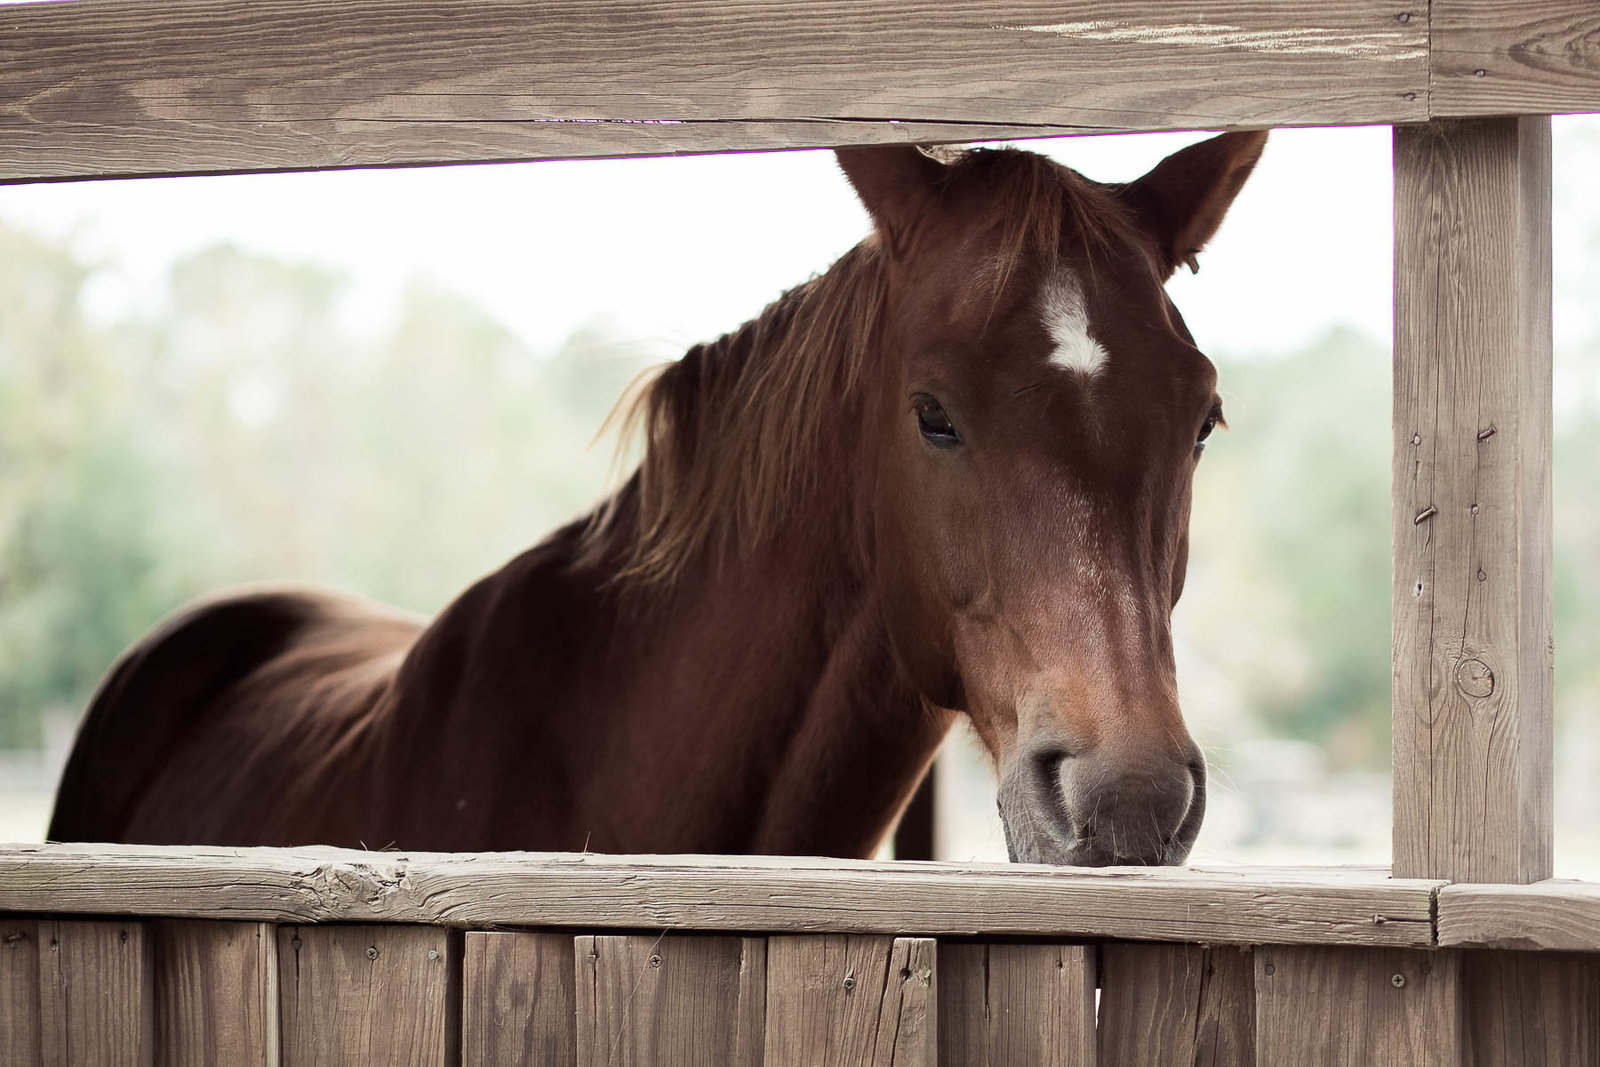 Horse stands in stable, Boals Farm, Charleston, South Carolina